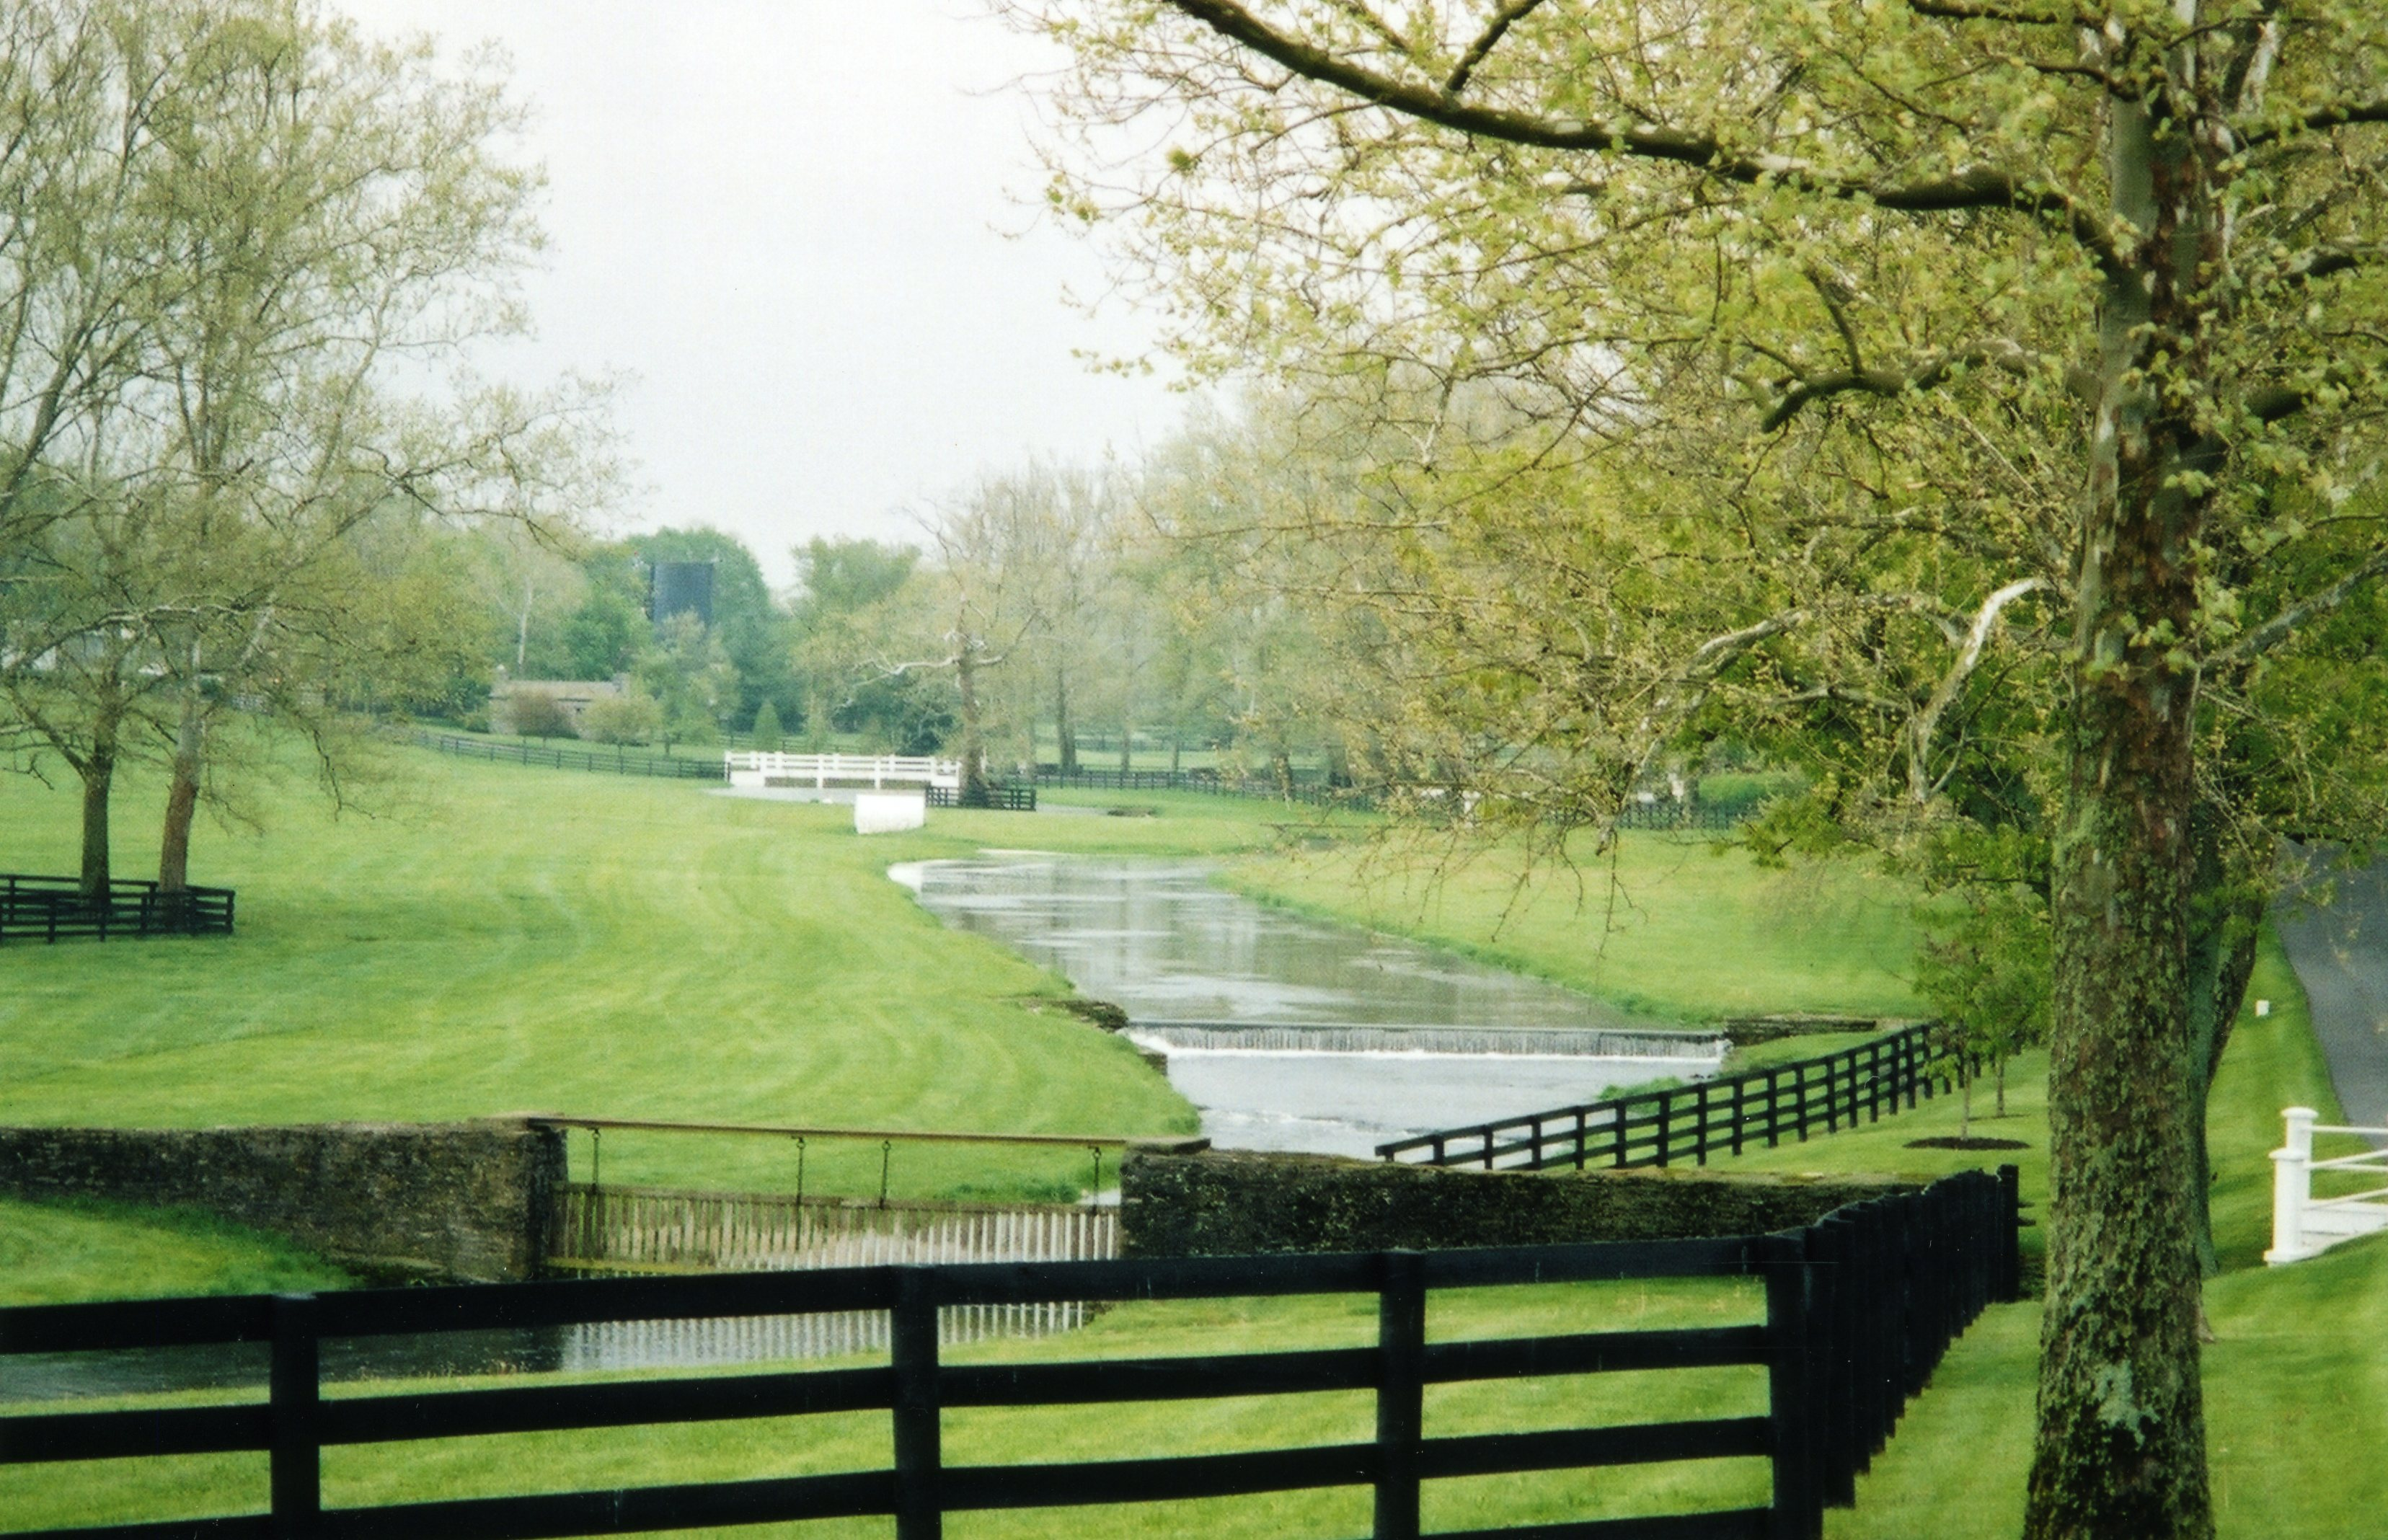 Claiborne Farm, May 2004